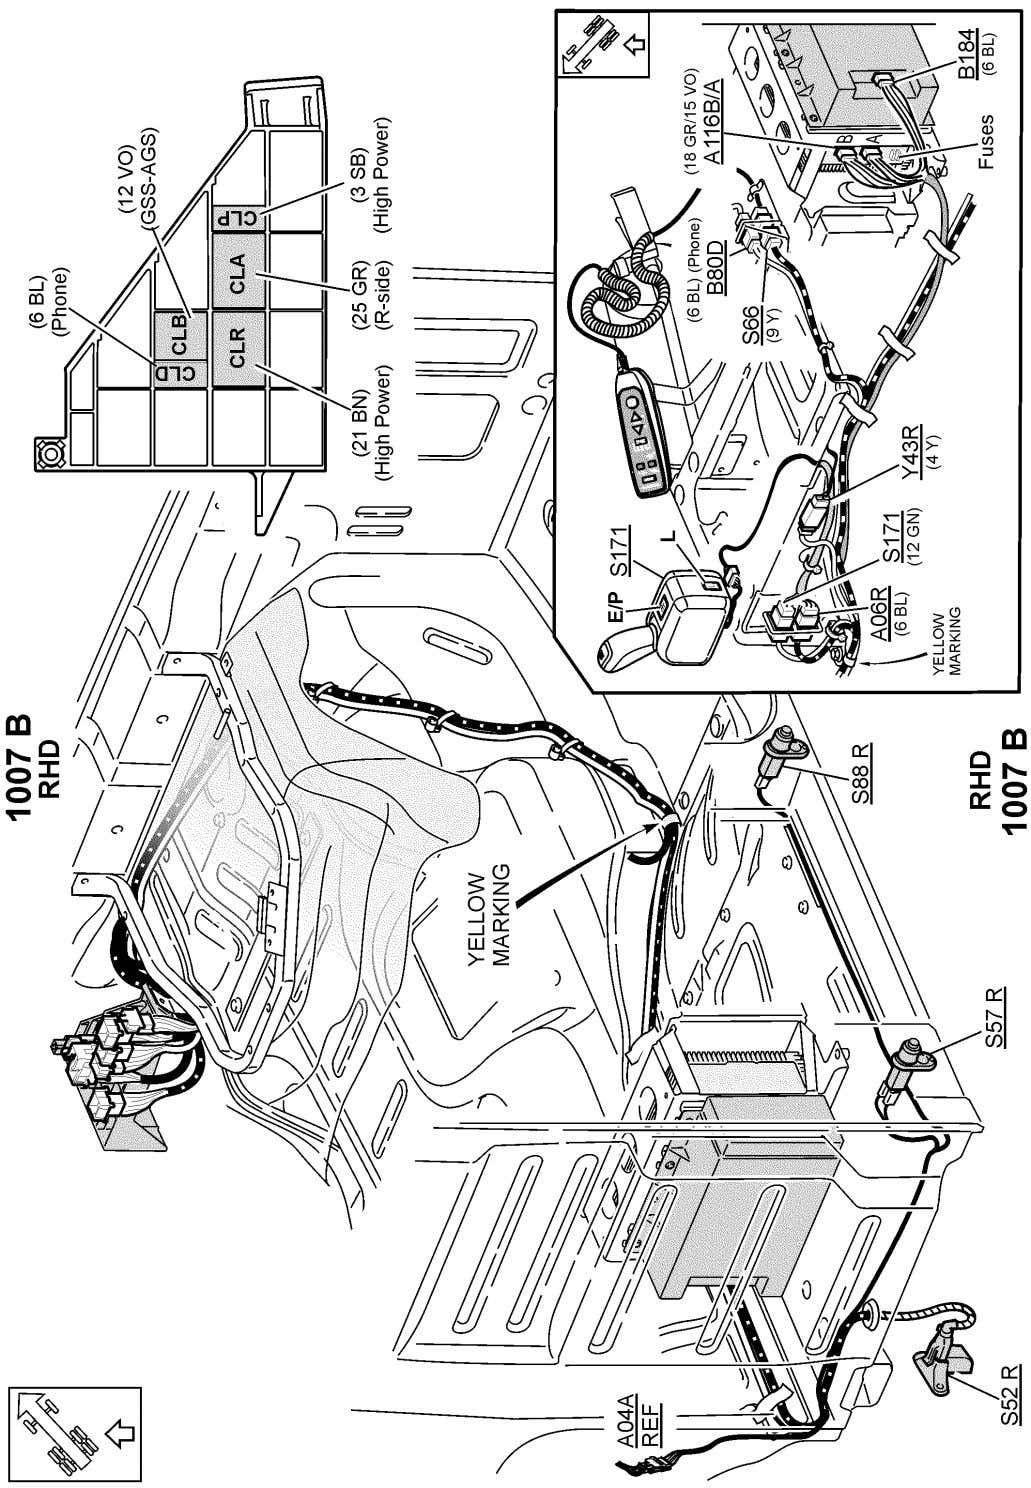 T3057743 Wiring diagram Page 151 (298)